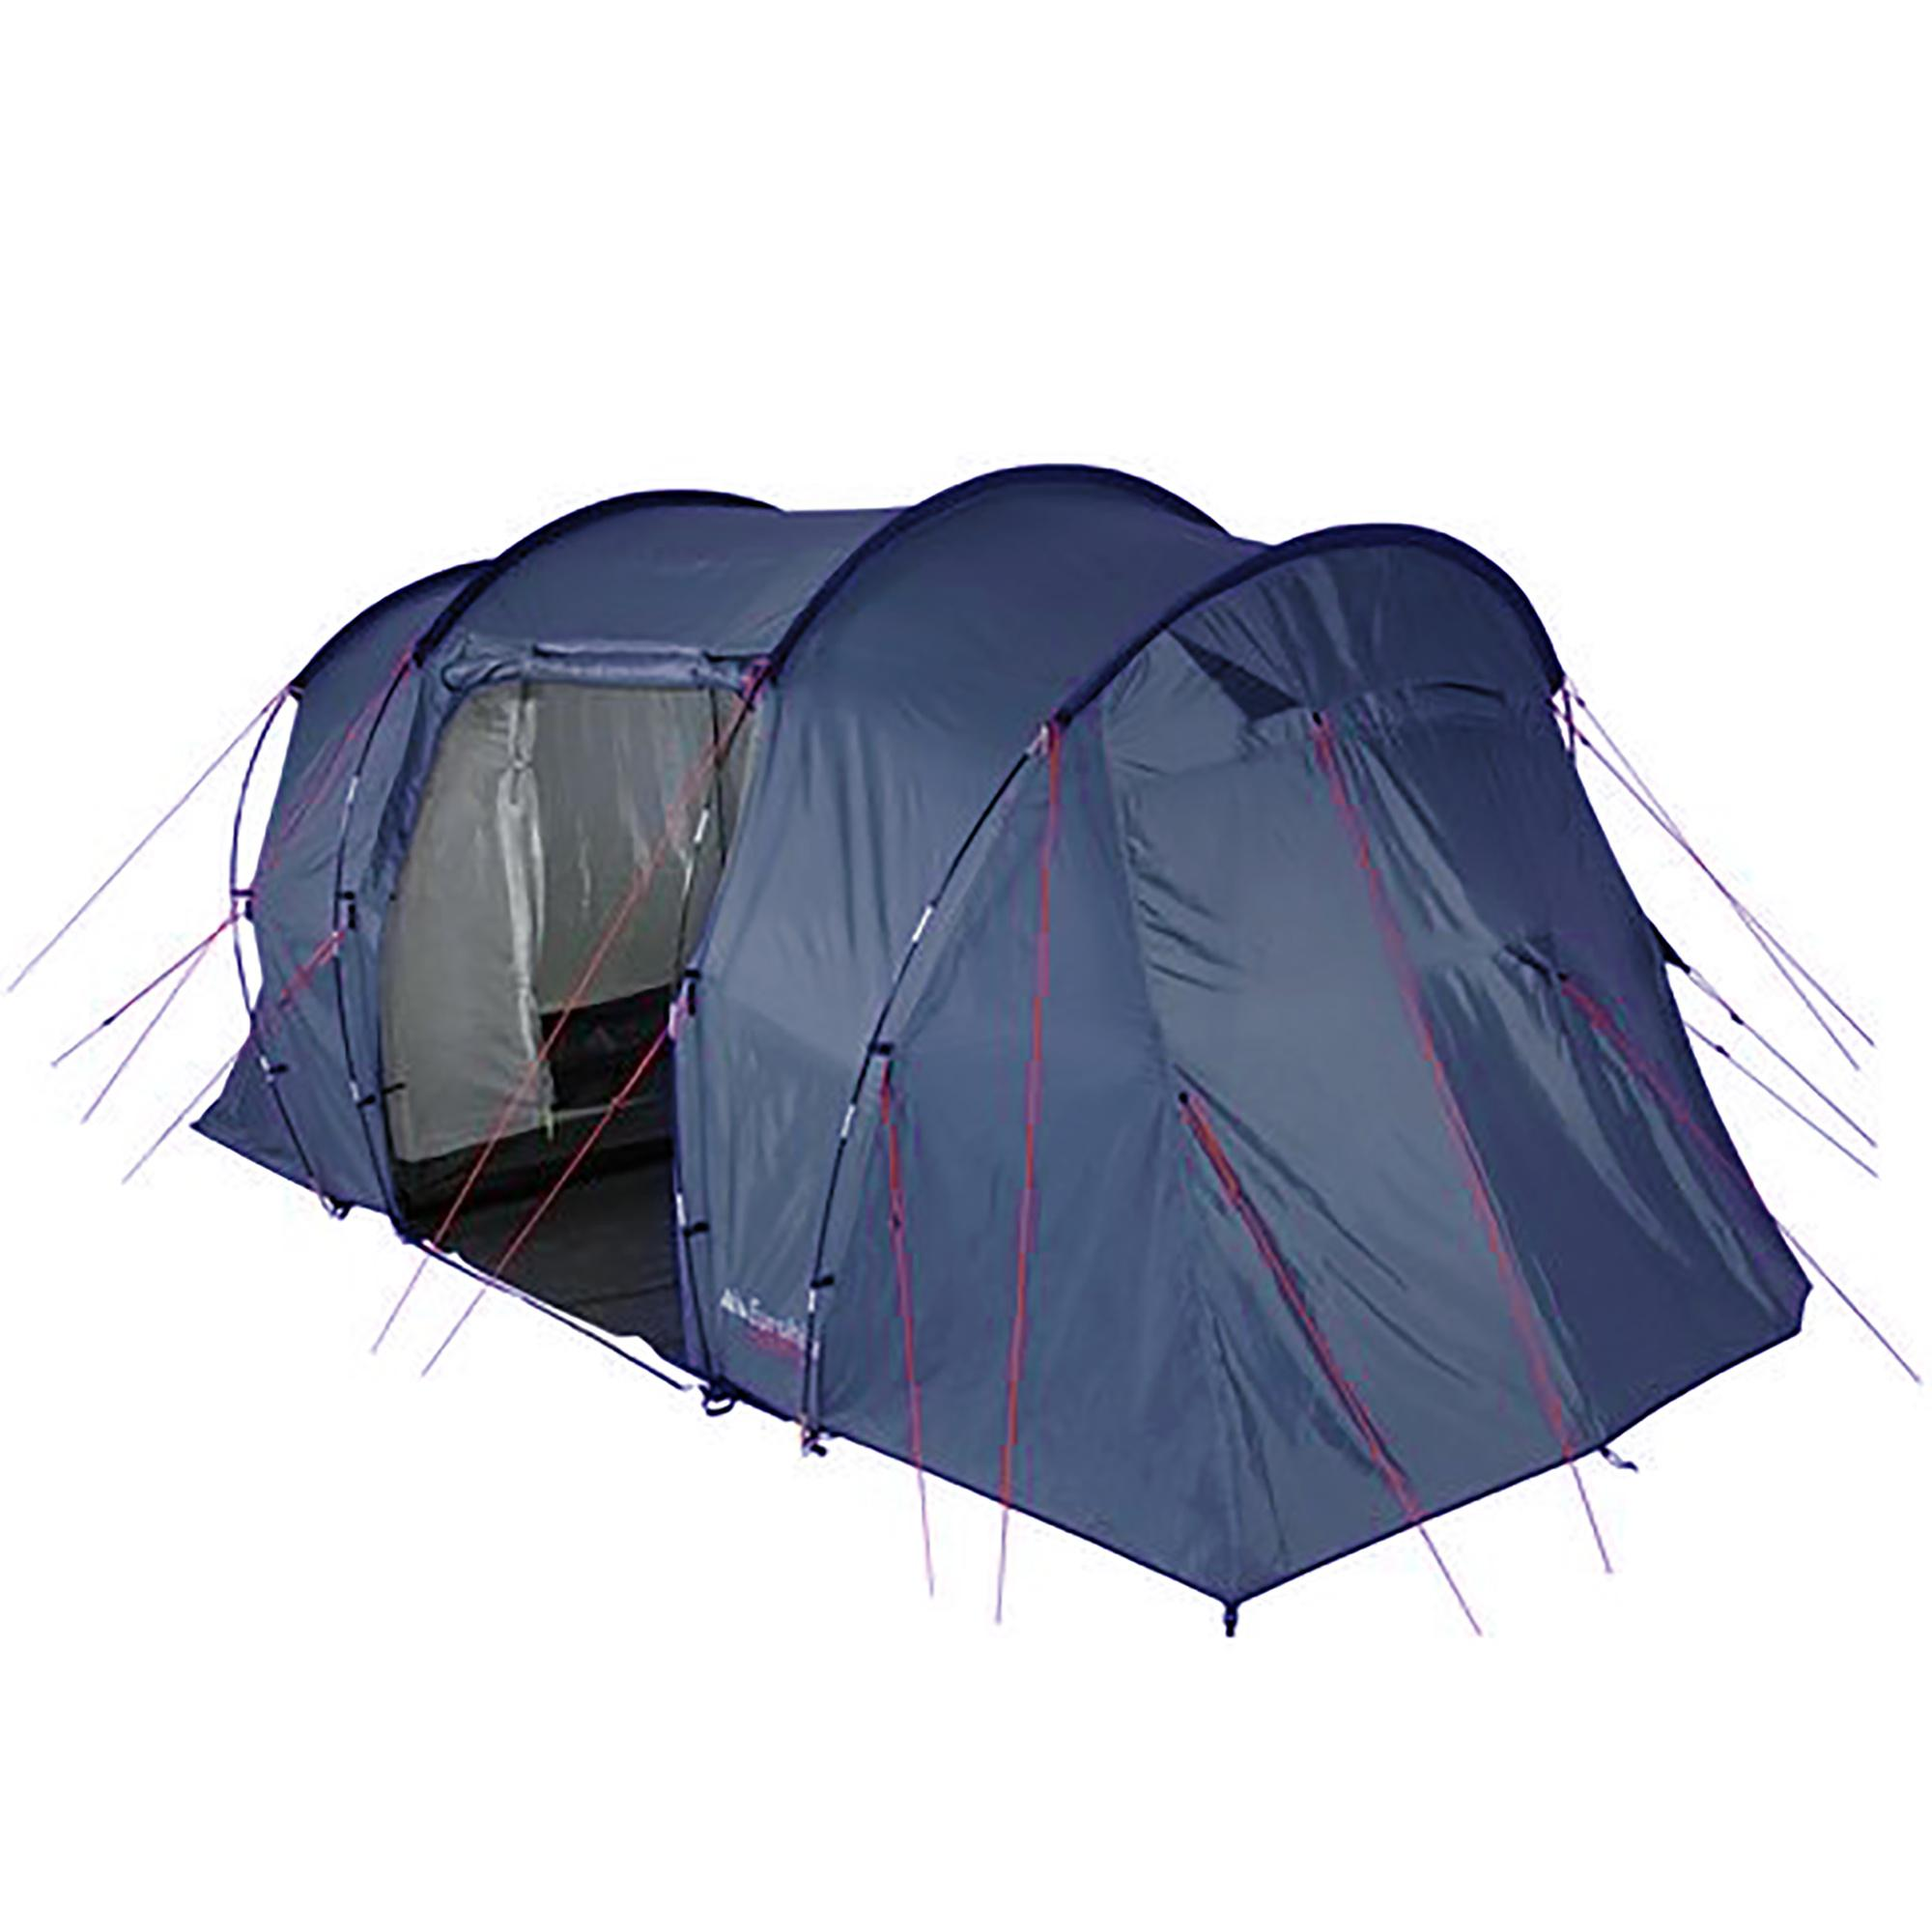 sc 1 st  Millets & HIGH POINT Cairngorm 4 Man Tunnel Tent | Millets